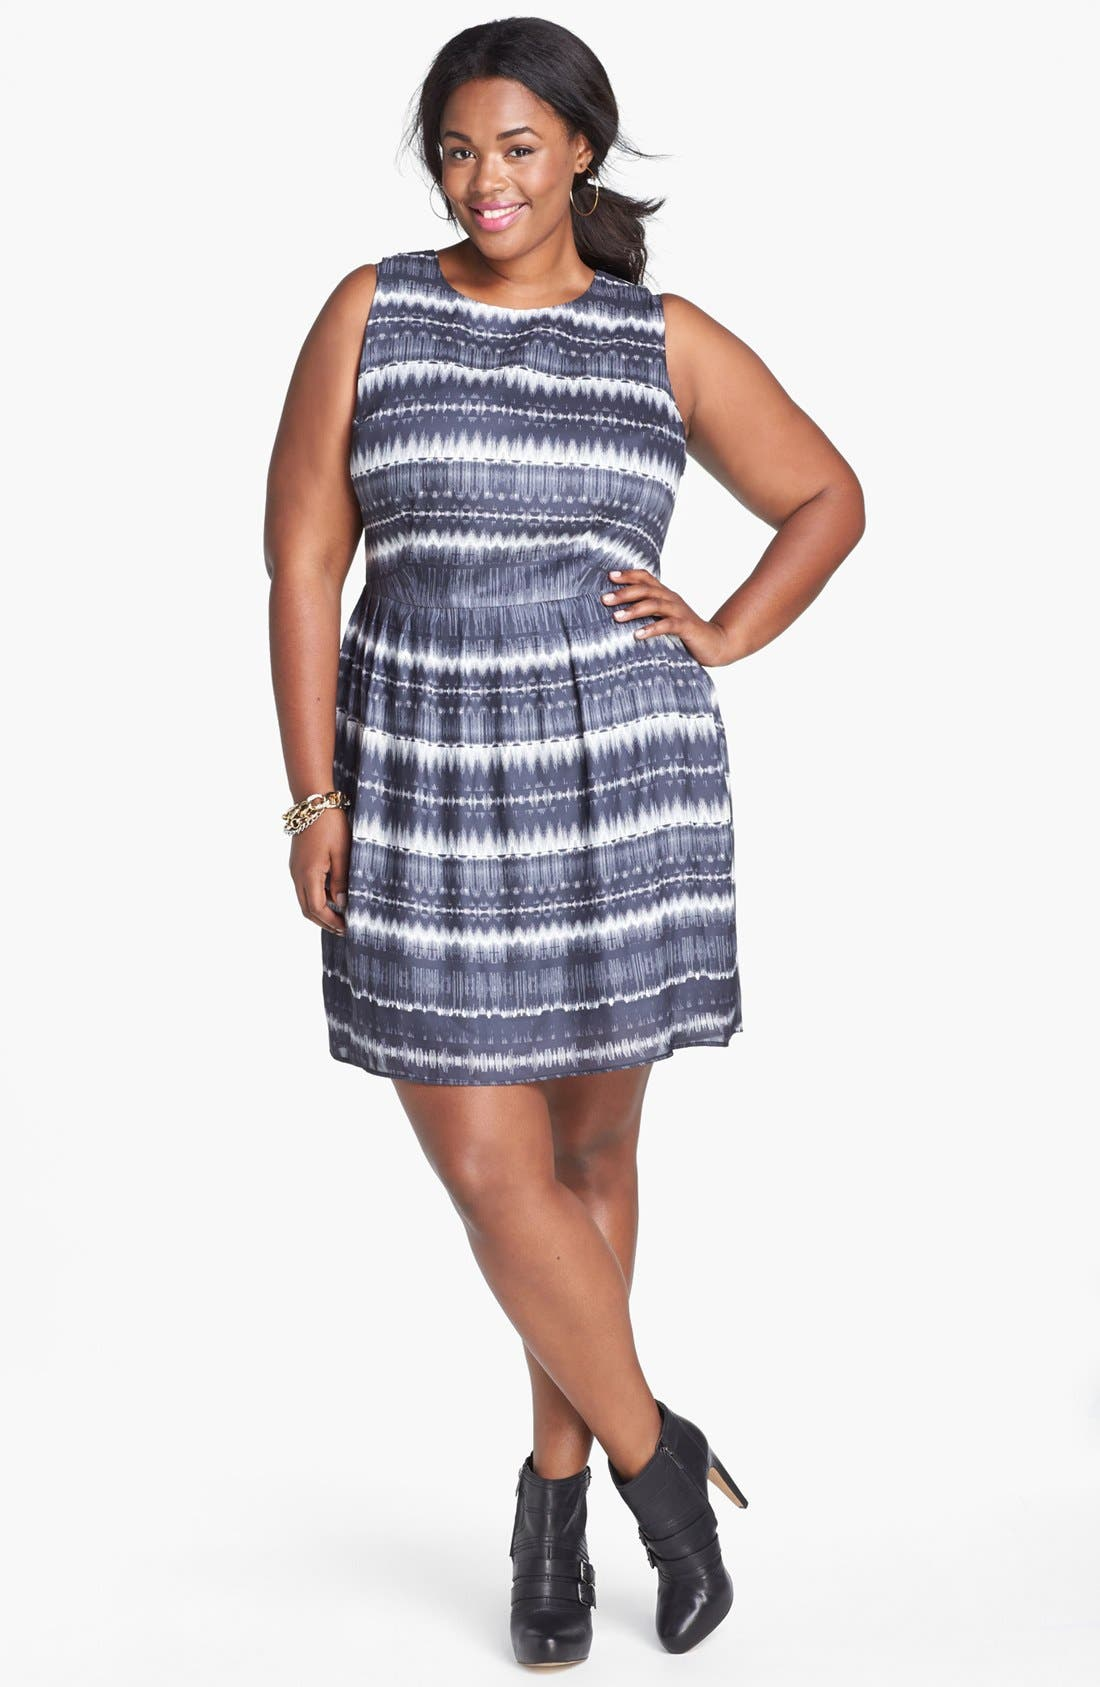 Alternate Image 1 Selected - BB Dakota 'Electricity' Print Crepe Fit & Flare Dress (Plus Size)